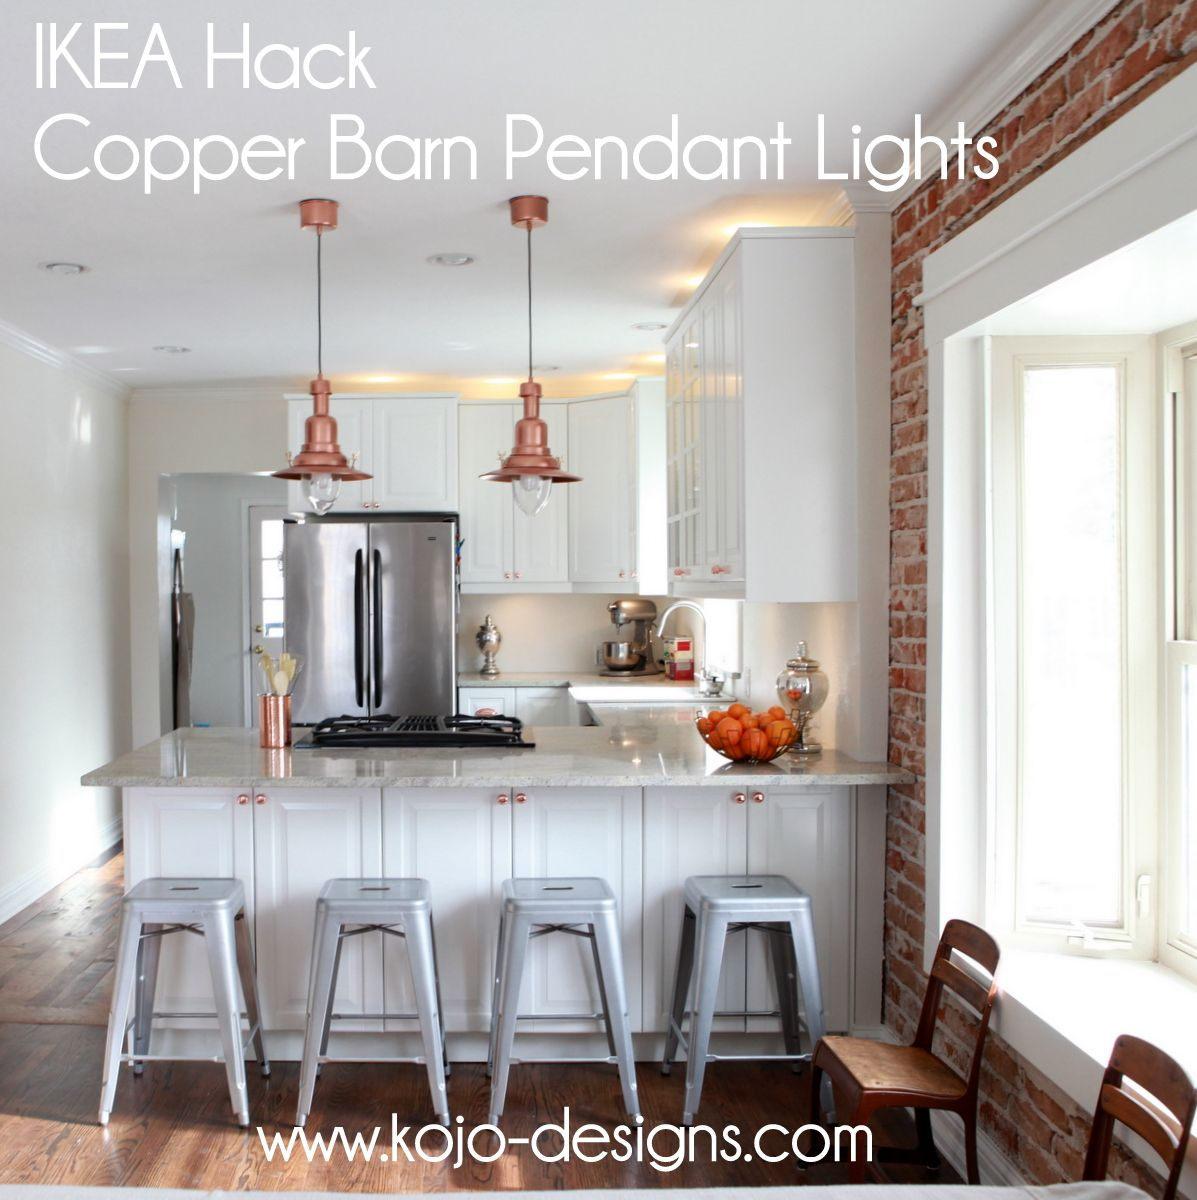 IKEA hack- how to turn an OTTAVA light into a copper barn pendant light. Not a fan of the shiny copper, but I love the light and the idea to hack it by spray painting it!